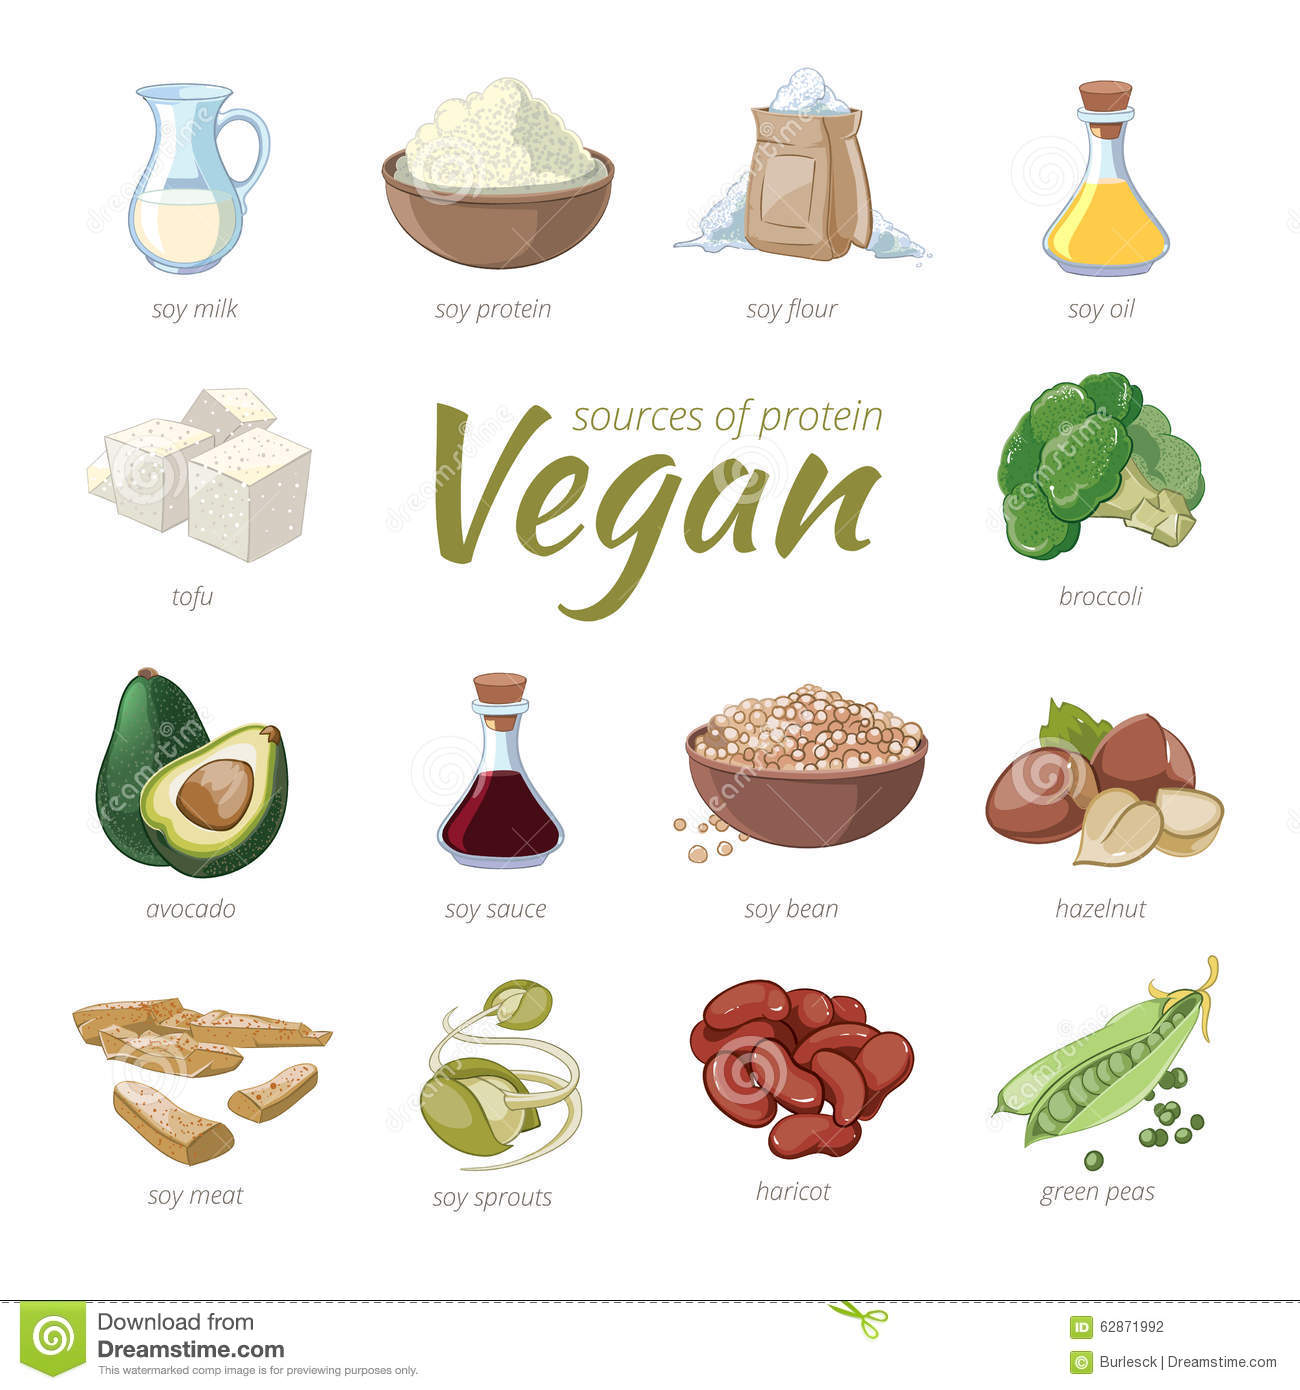 Protein In Plants Vs Meat Chart | All About Ketogenic Diet